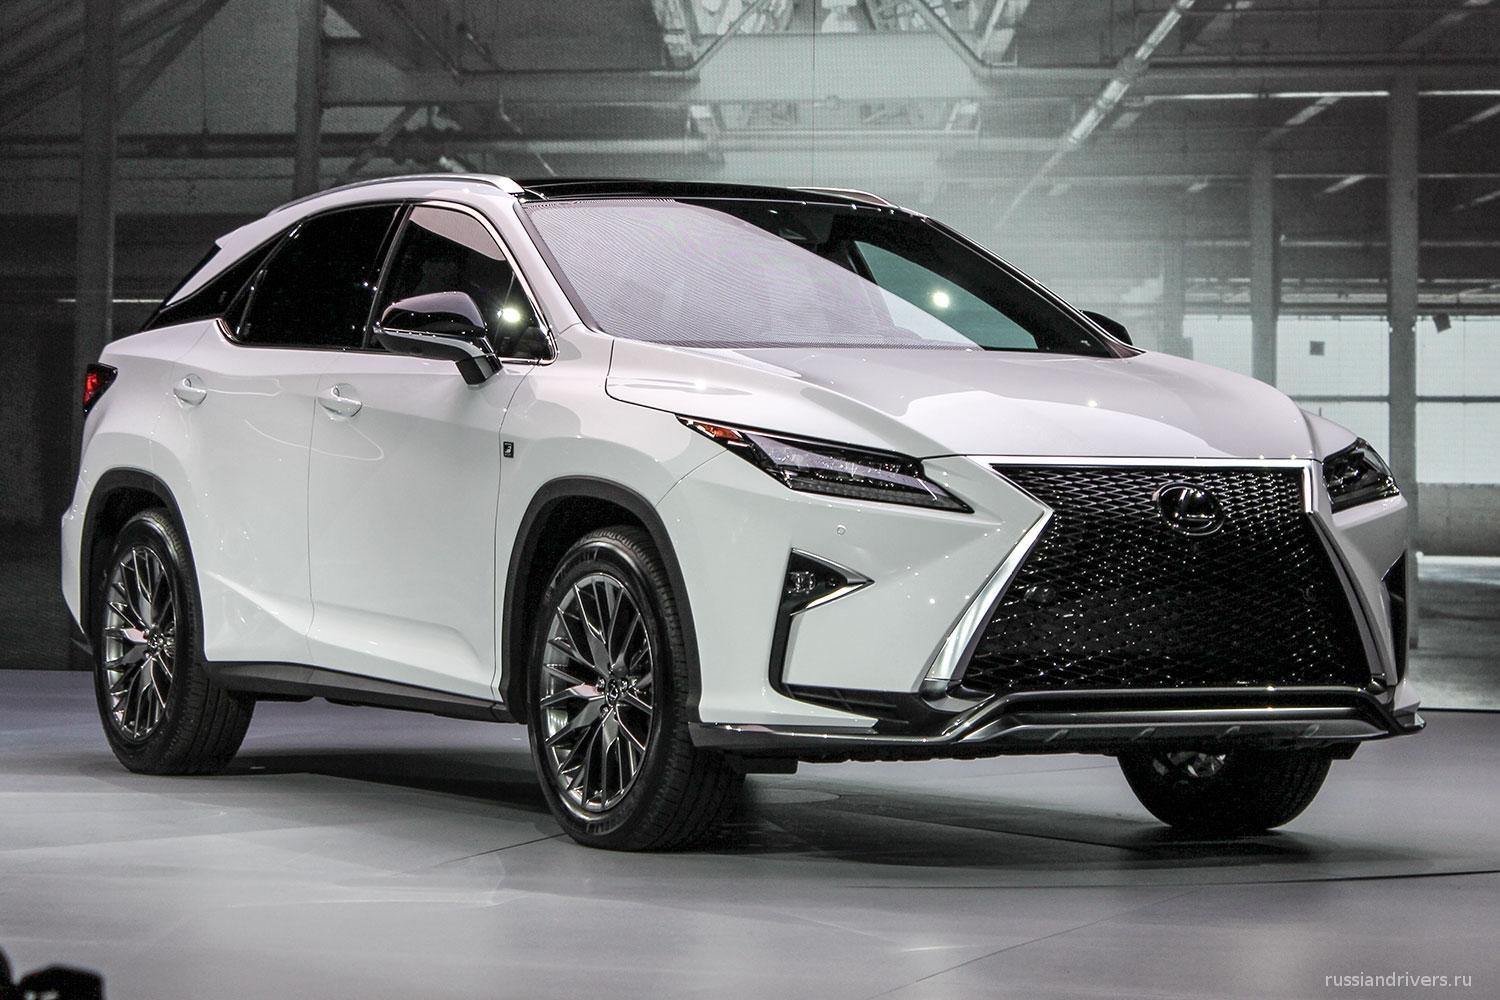 lexus rx 2016 hd wallpapers free download. Black Bedroom Furniture Sets. Home Design Ideas